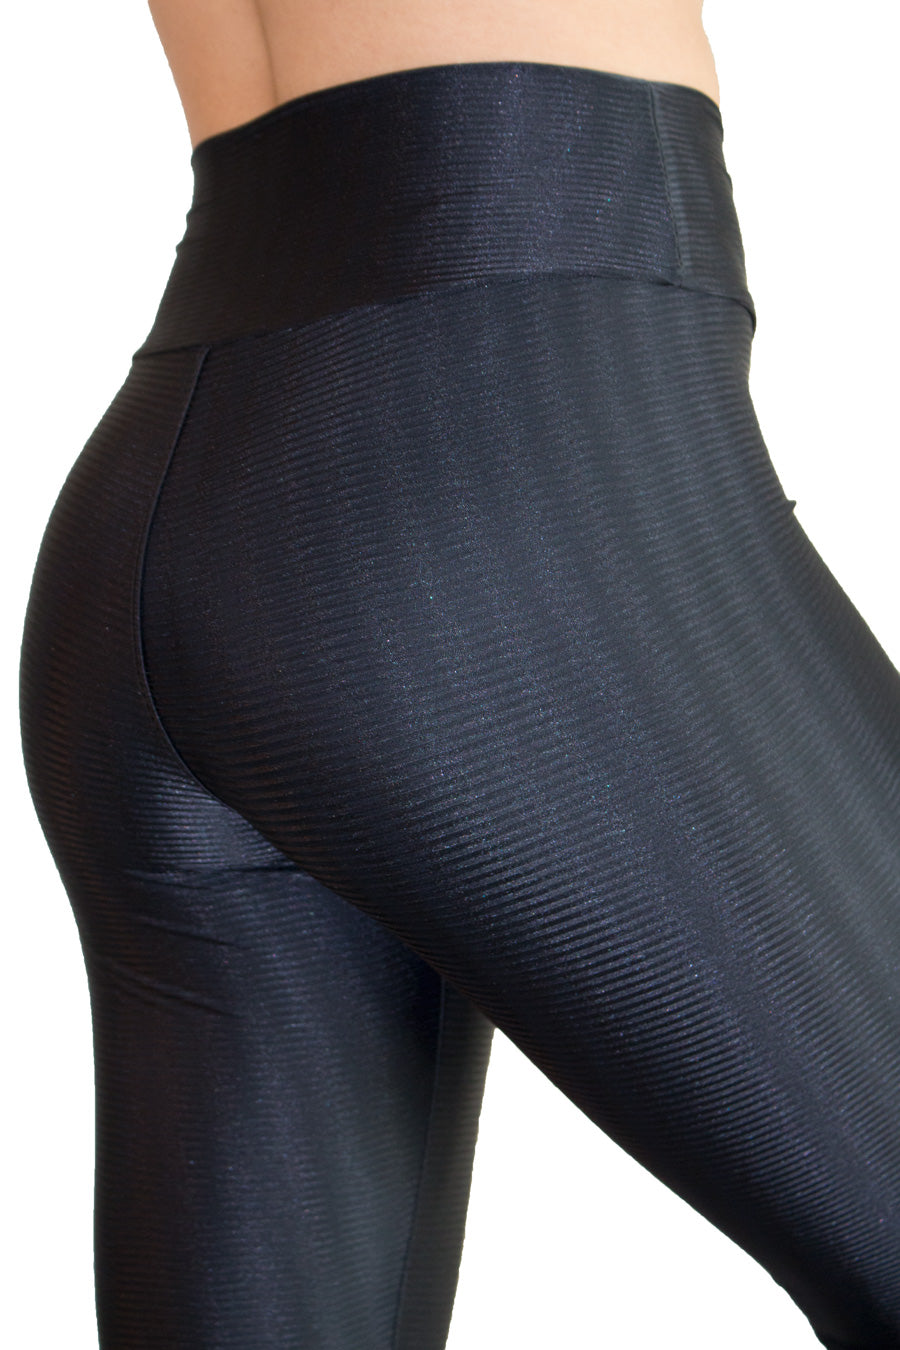 Deixa Brilhar Cirre Leggings - women yoga clothes beBrazil